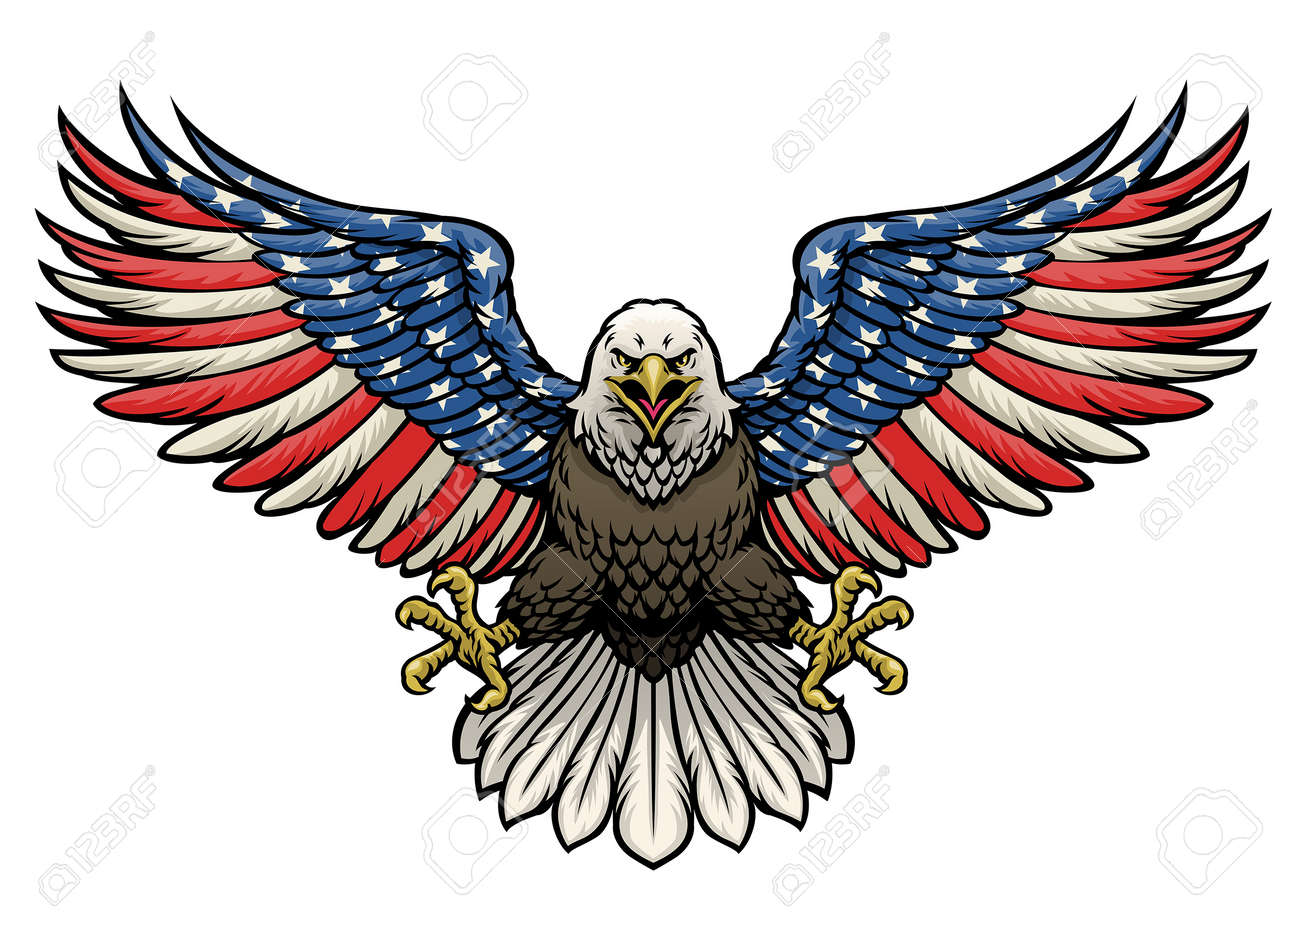 vector of american flag painted bald eagle - 171103887